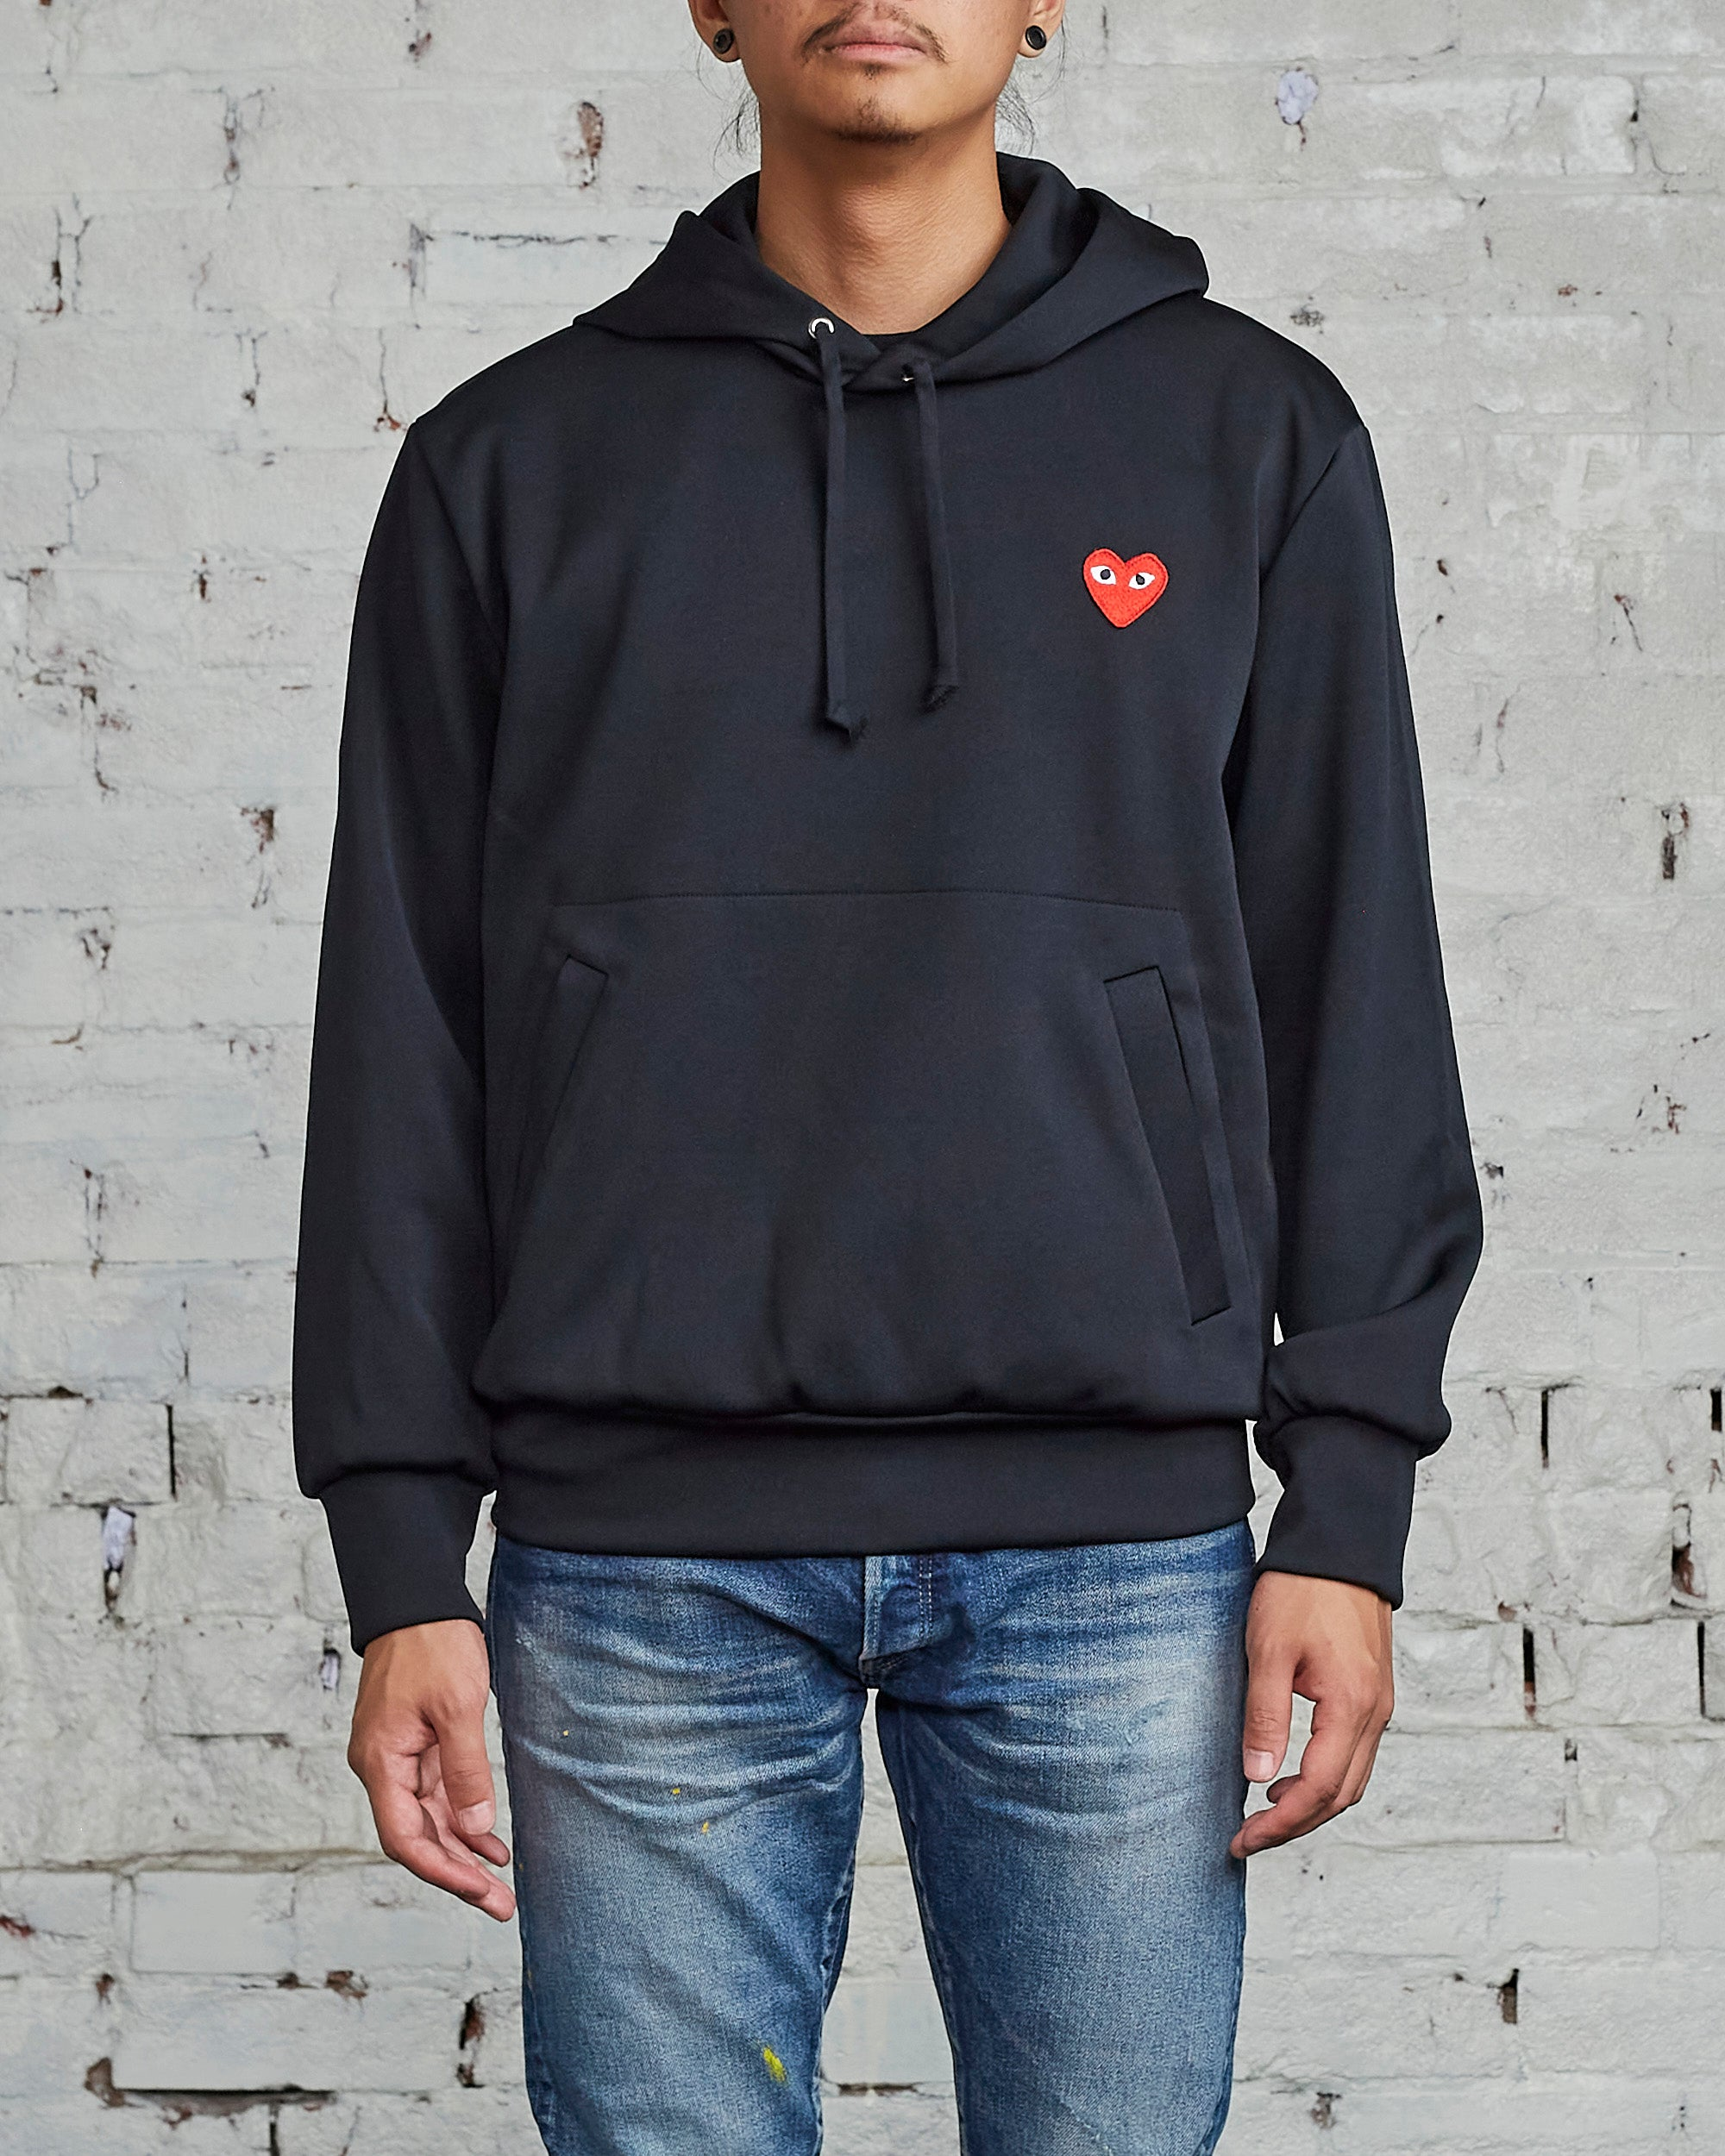 Comme des Garçons PLAY Red Heart Hooded Sweatshirt Black